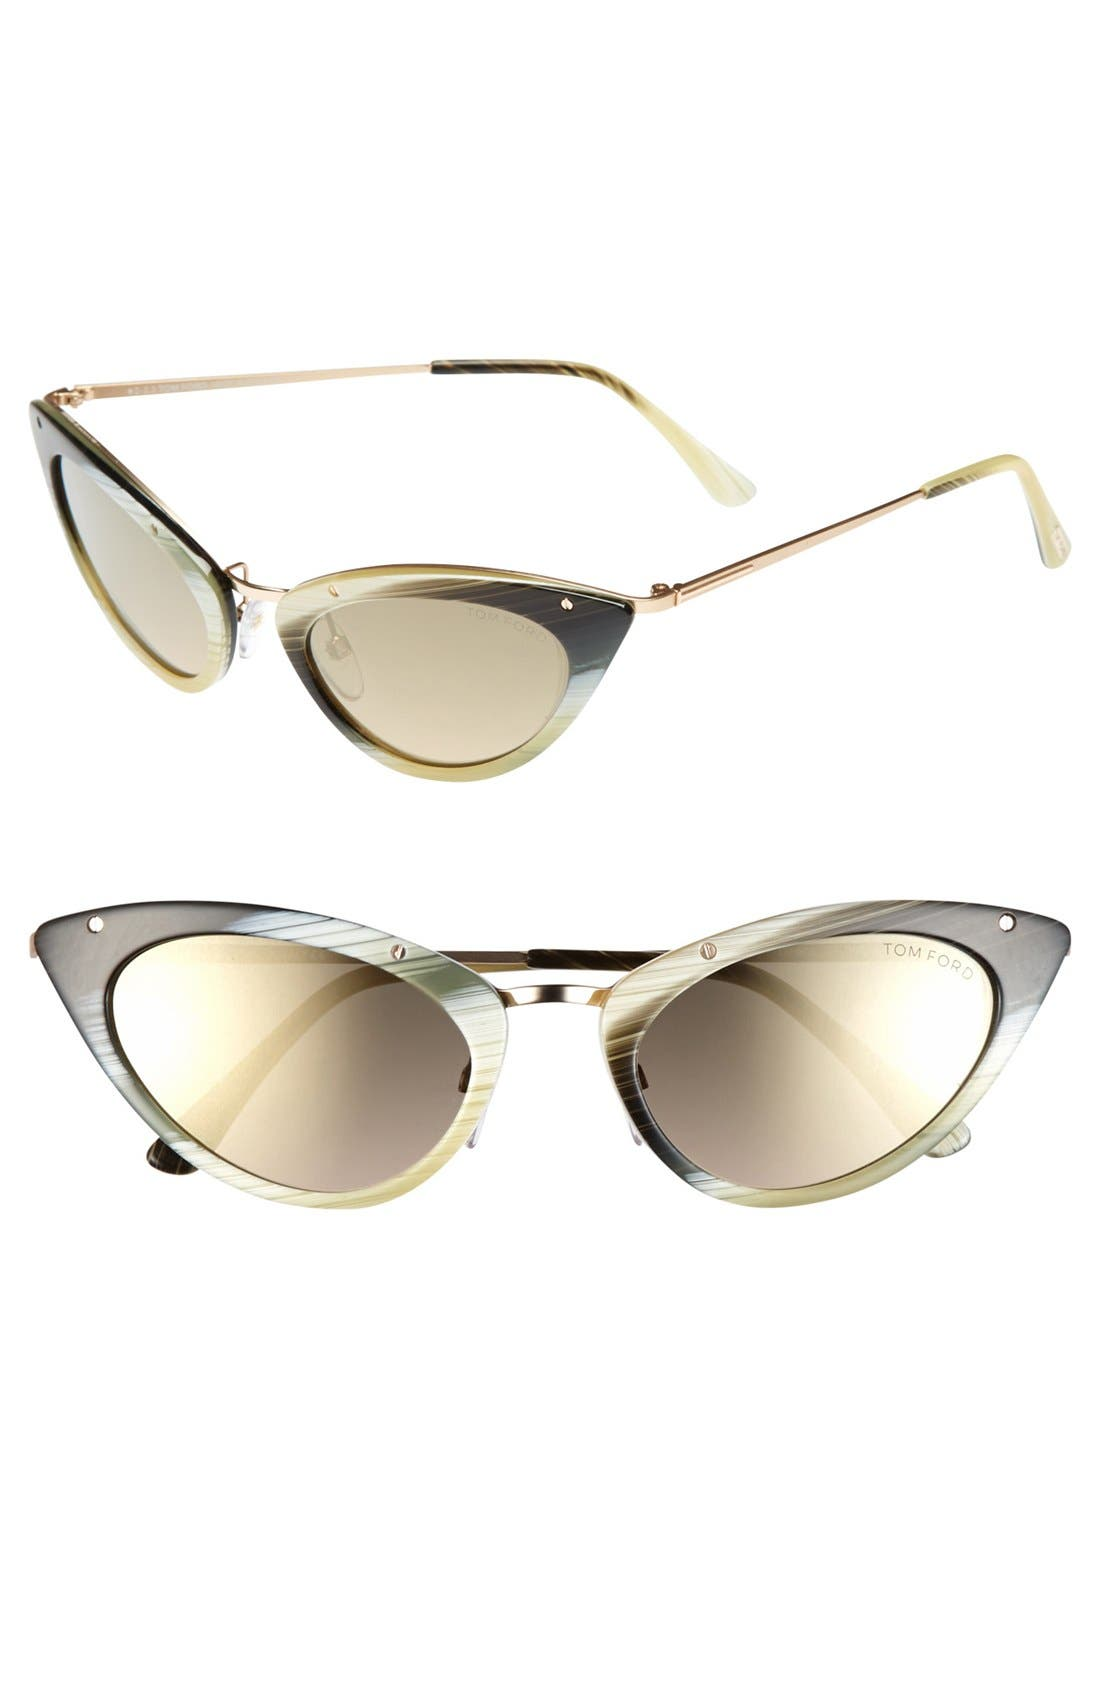 Main Image - Tom Ford 'Grace' 52mm Sunglasses